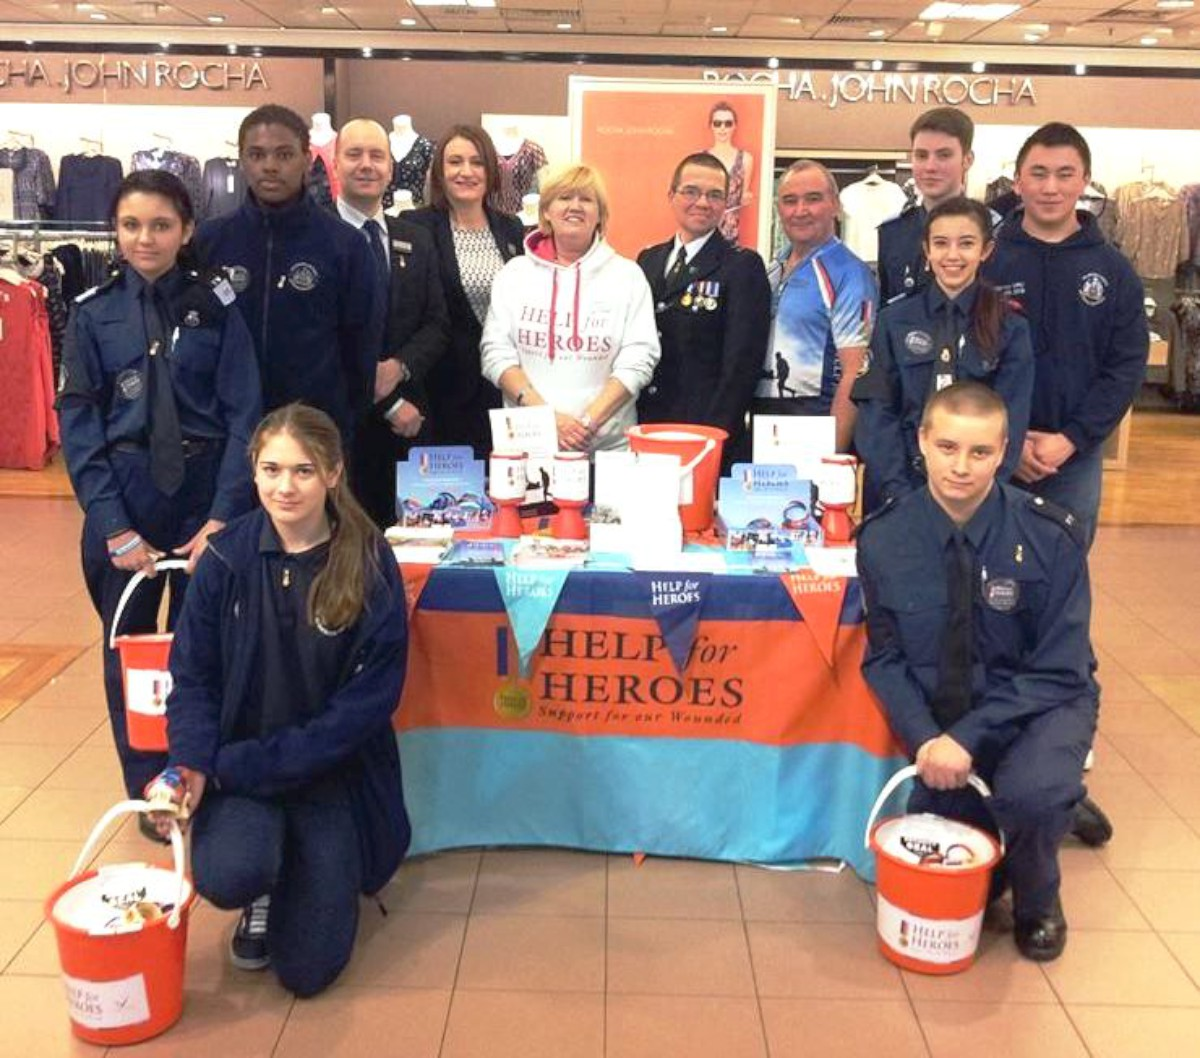 Youngsters raise money for Help for Heroes in Wimbledon